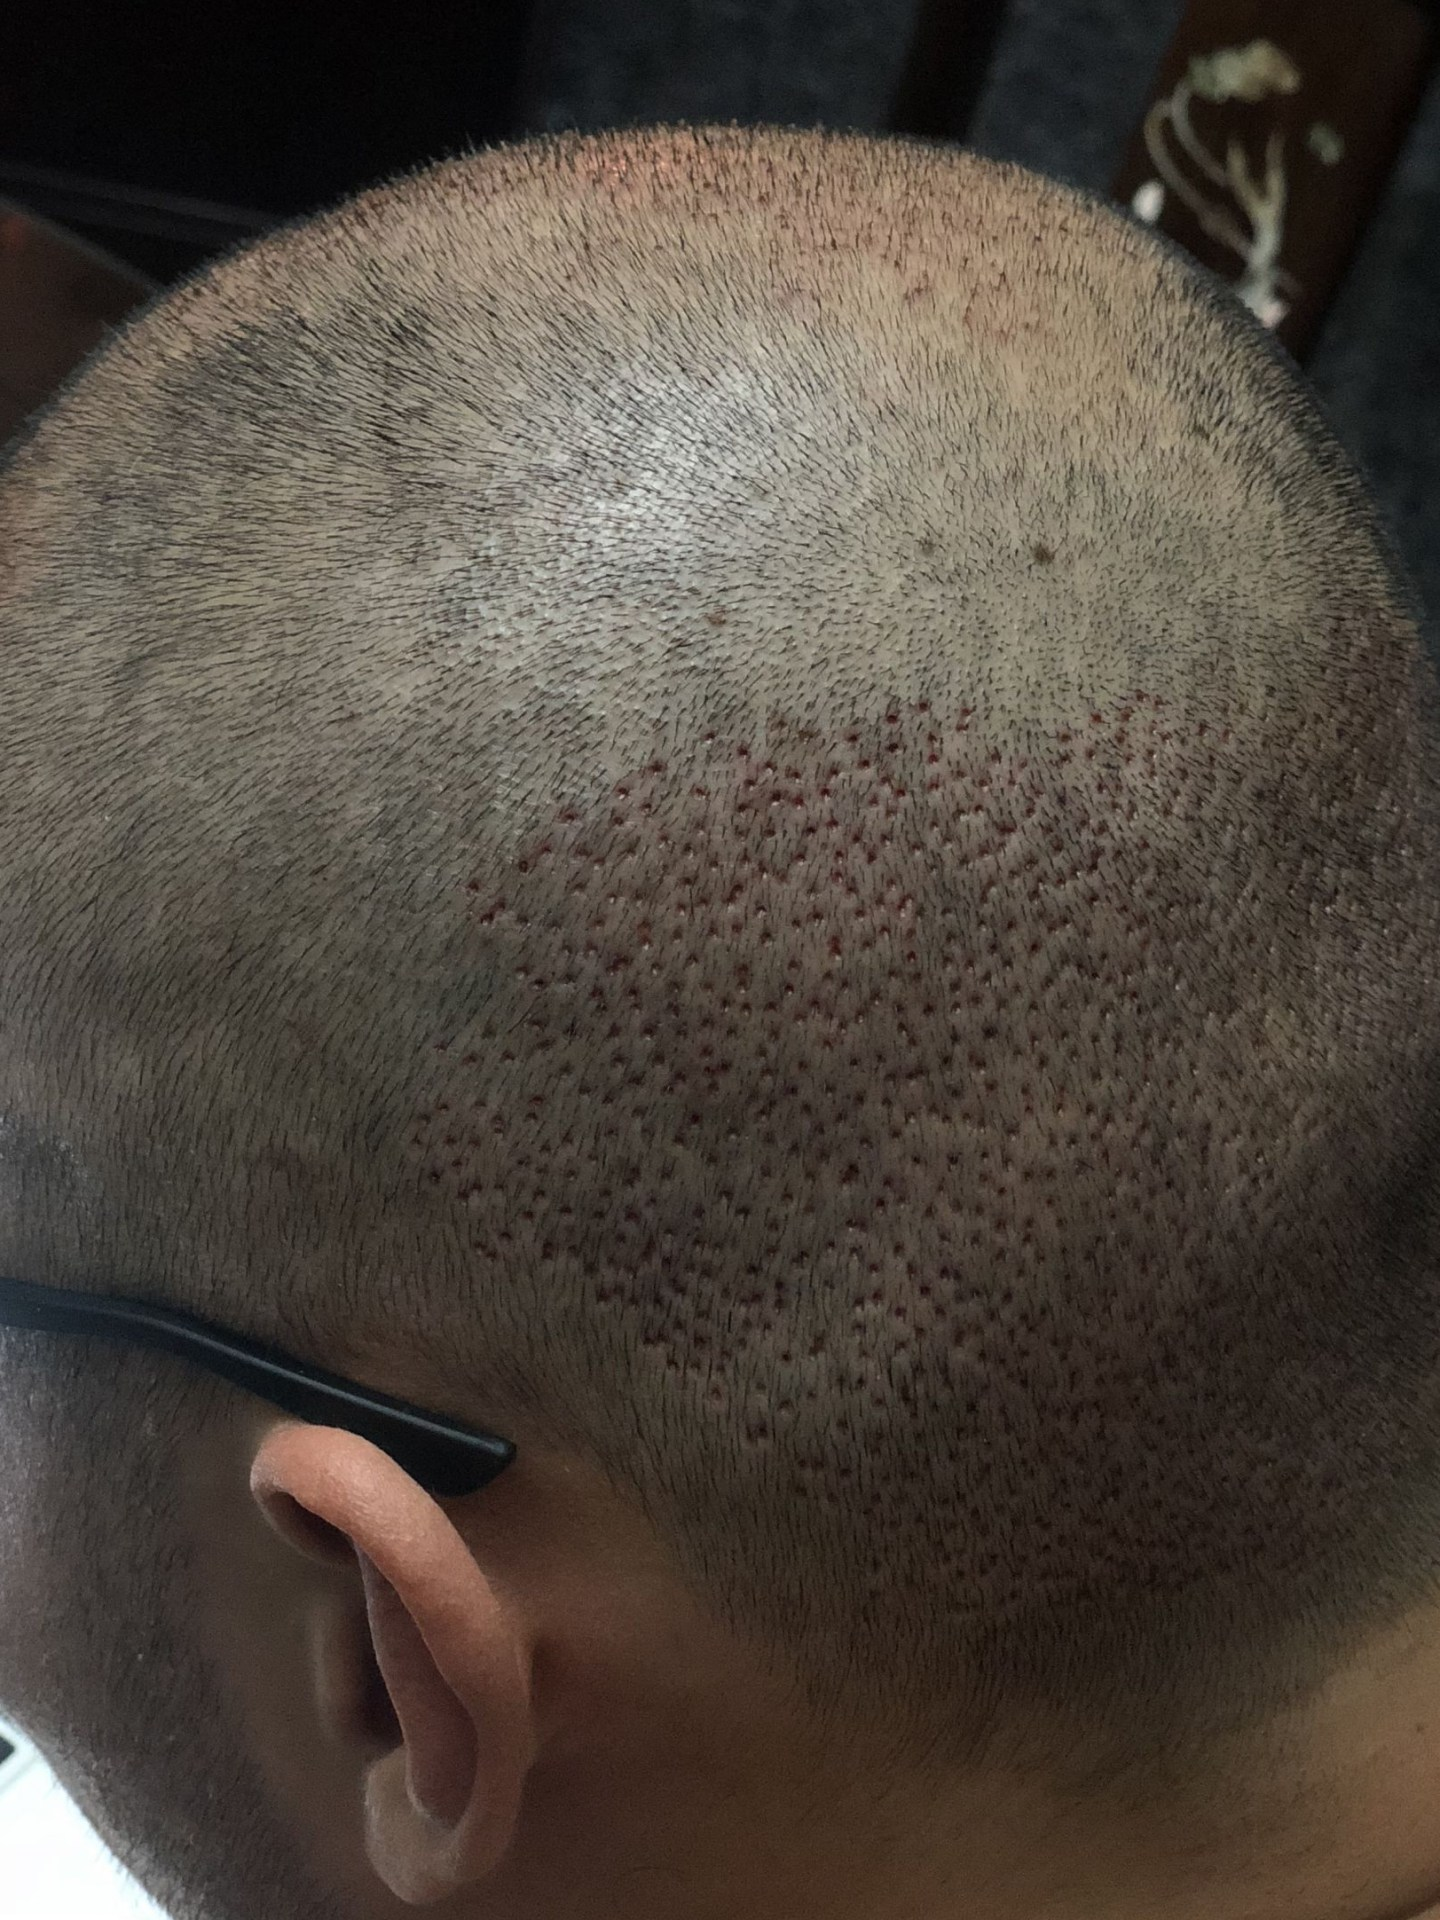 After FUE hair transplant surgery